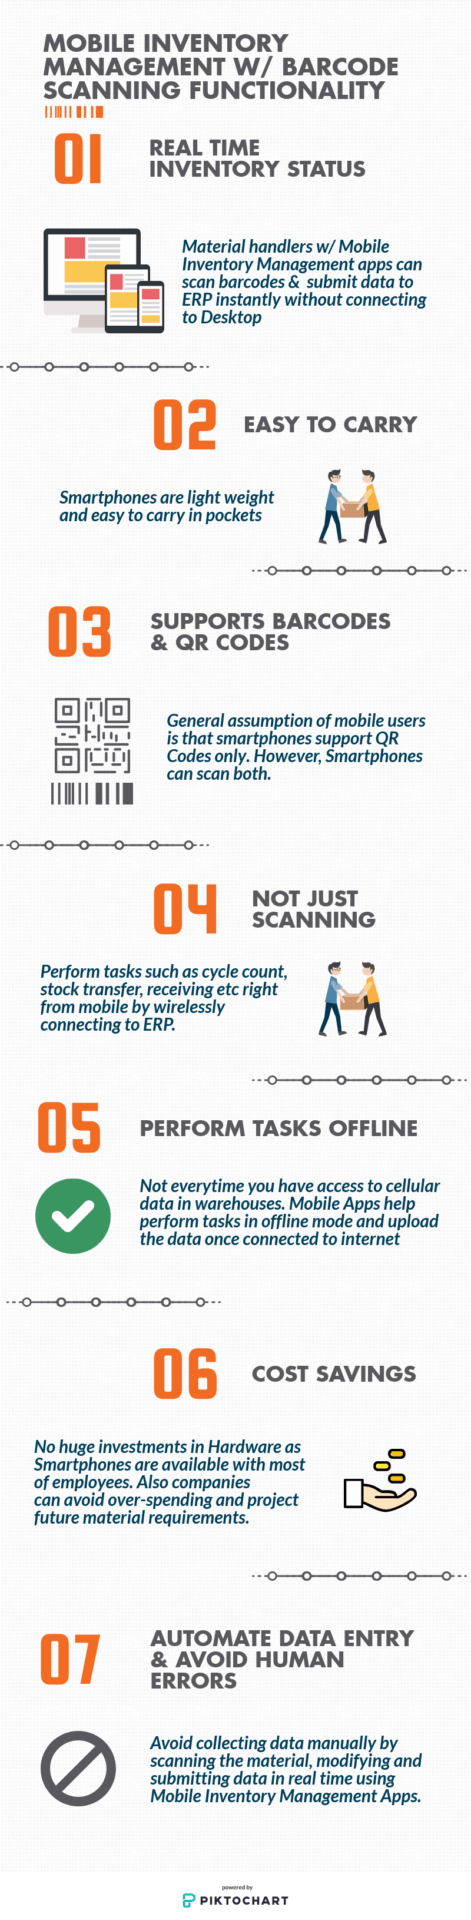 Inventory Management Barcode Scanning Infographic